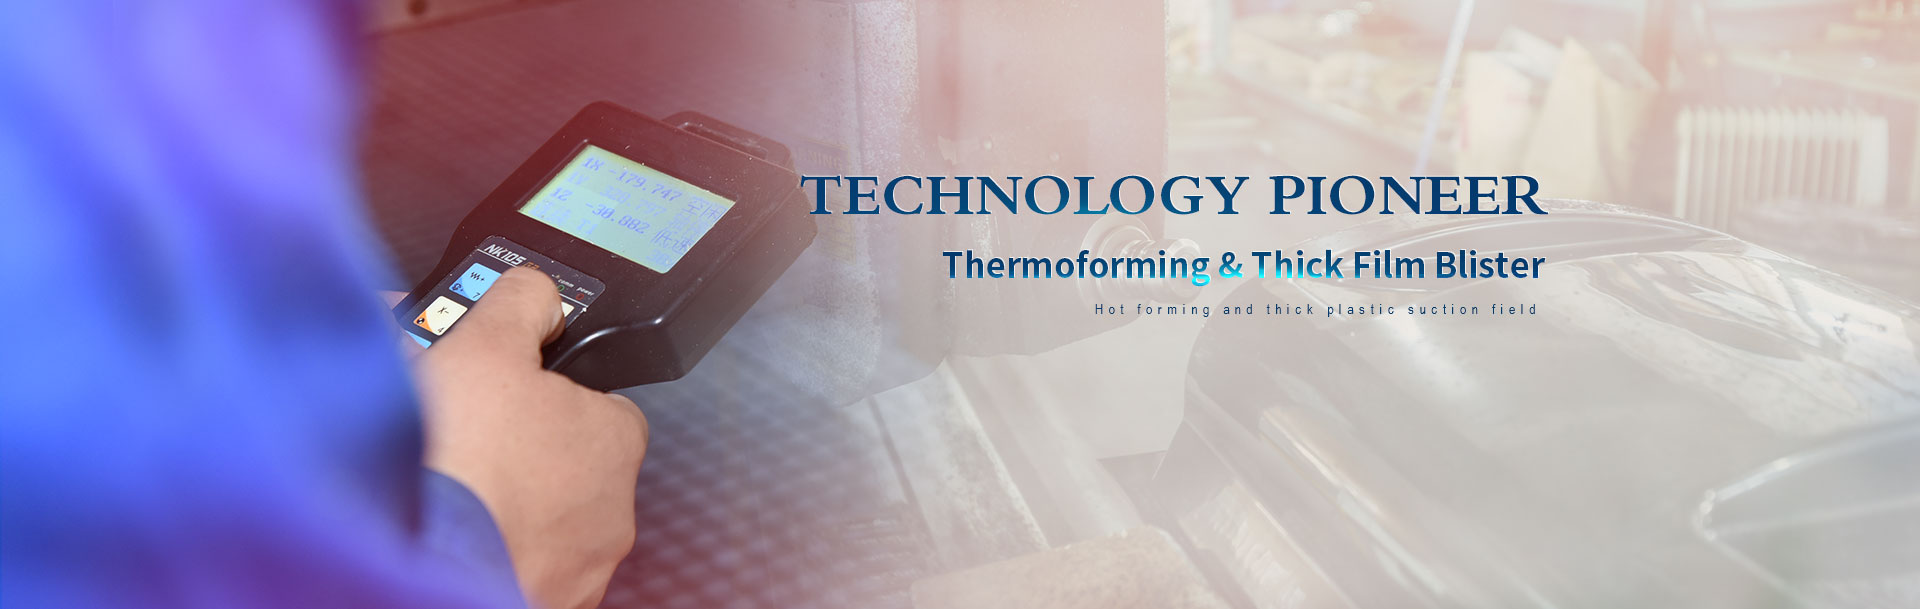 Thermoforming & Thick Film Blister